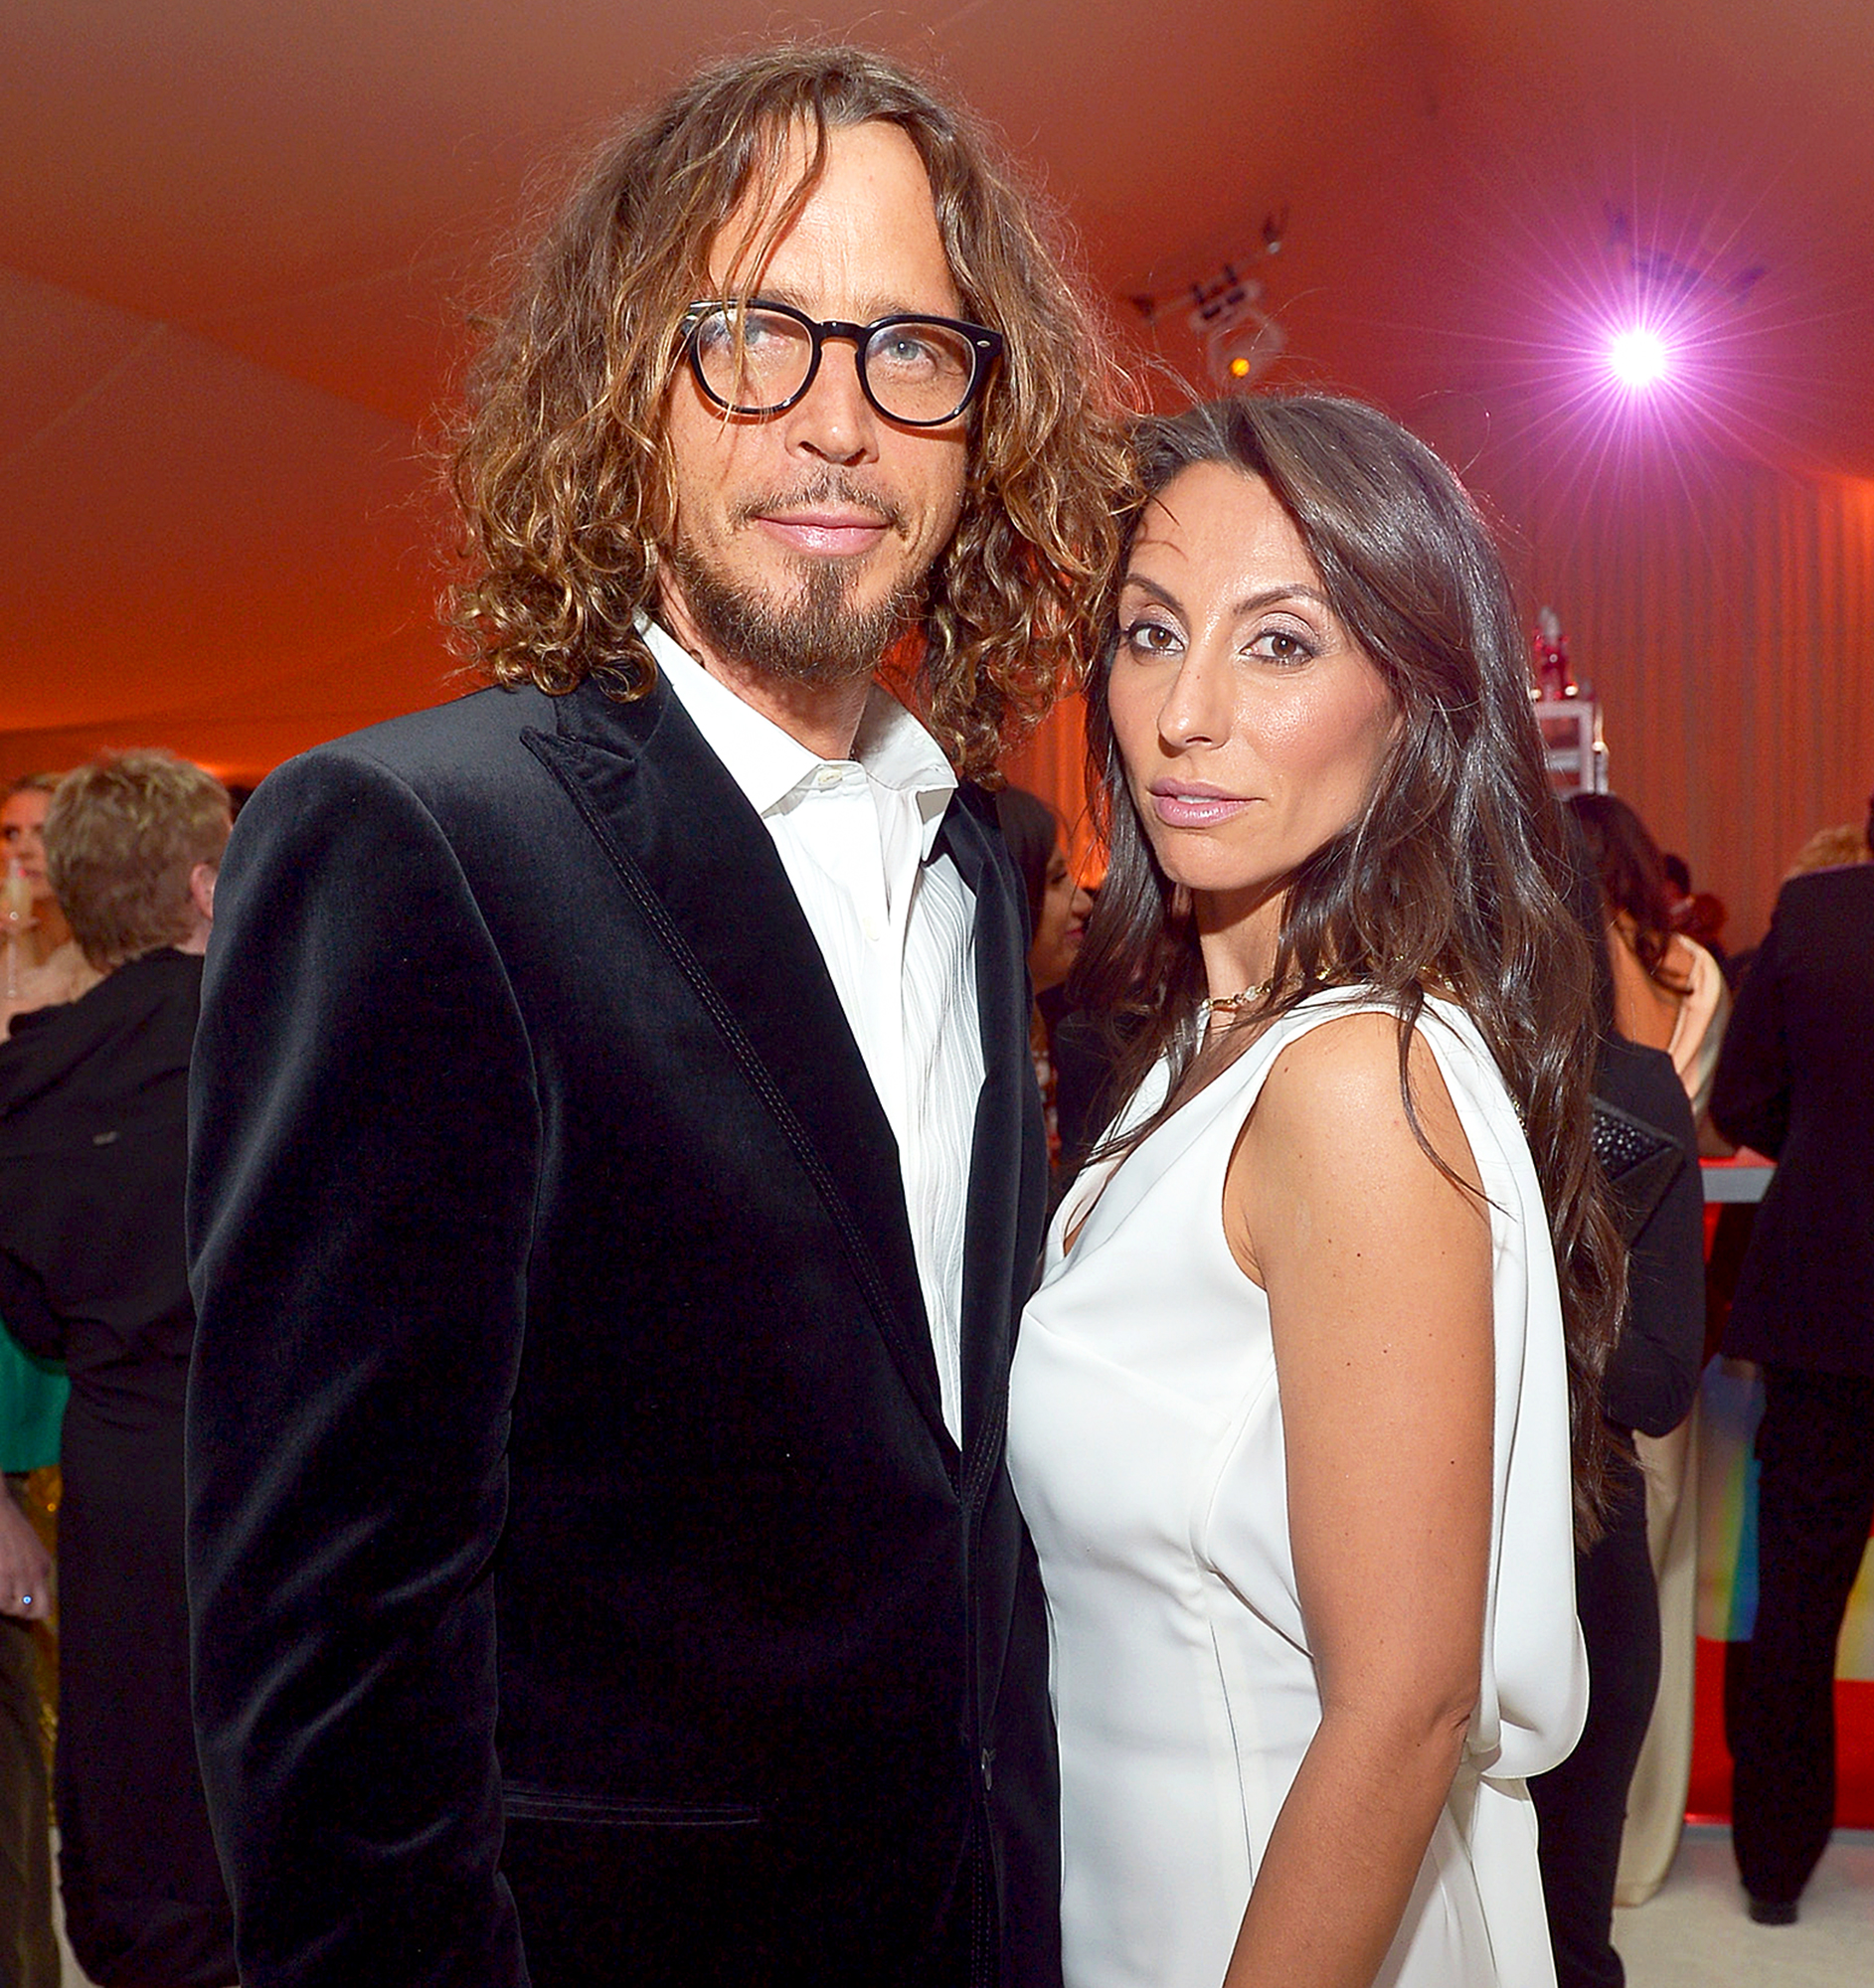 Chris Cornell's Wife Opens Up About His Battle With Addiction